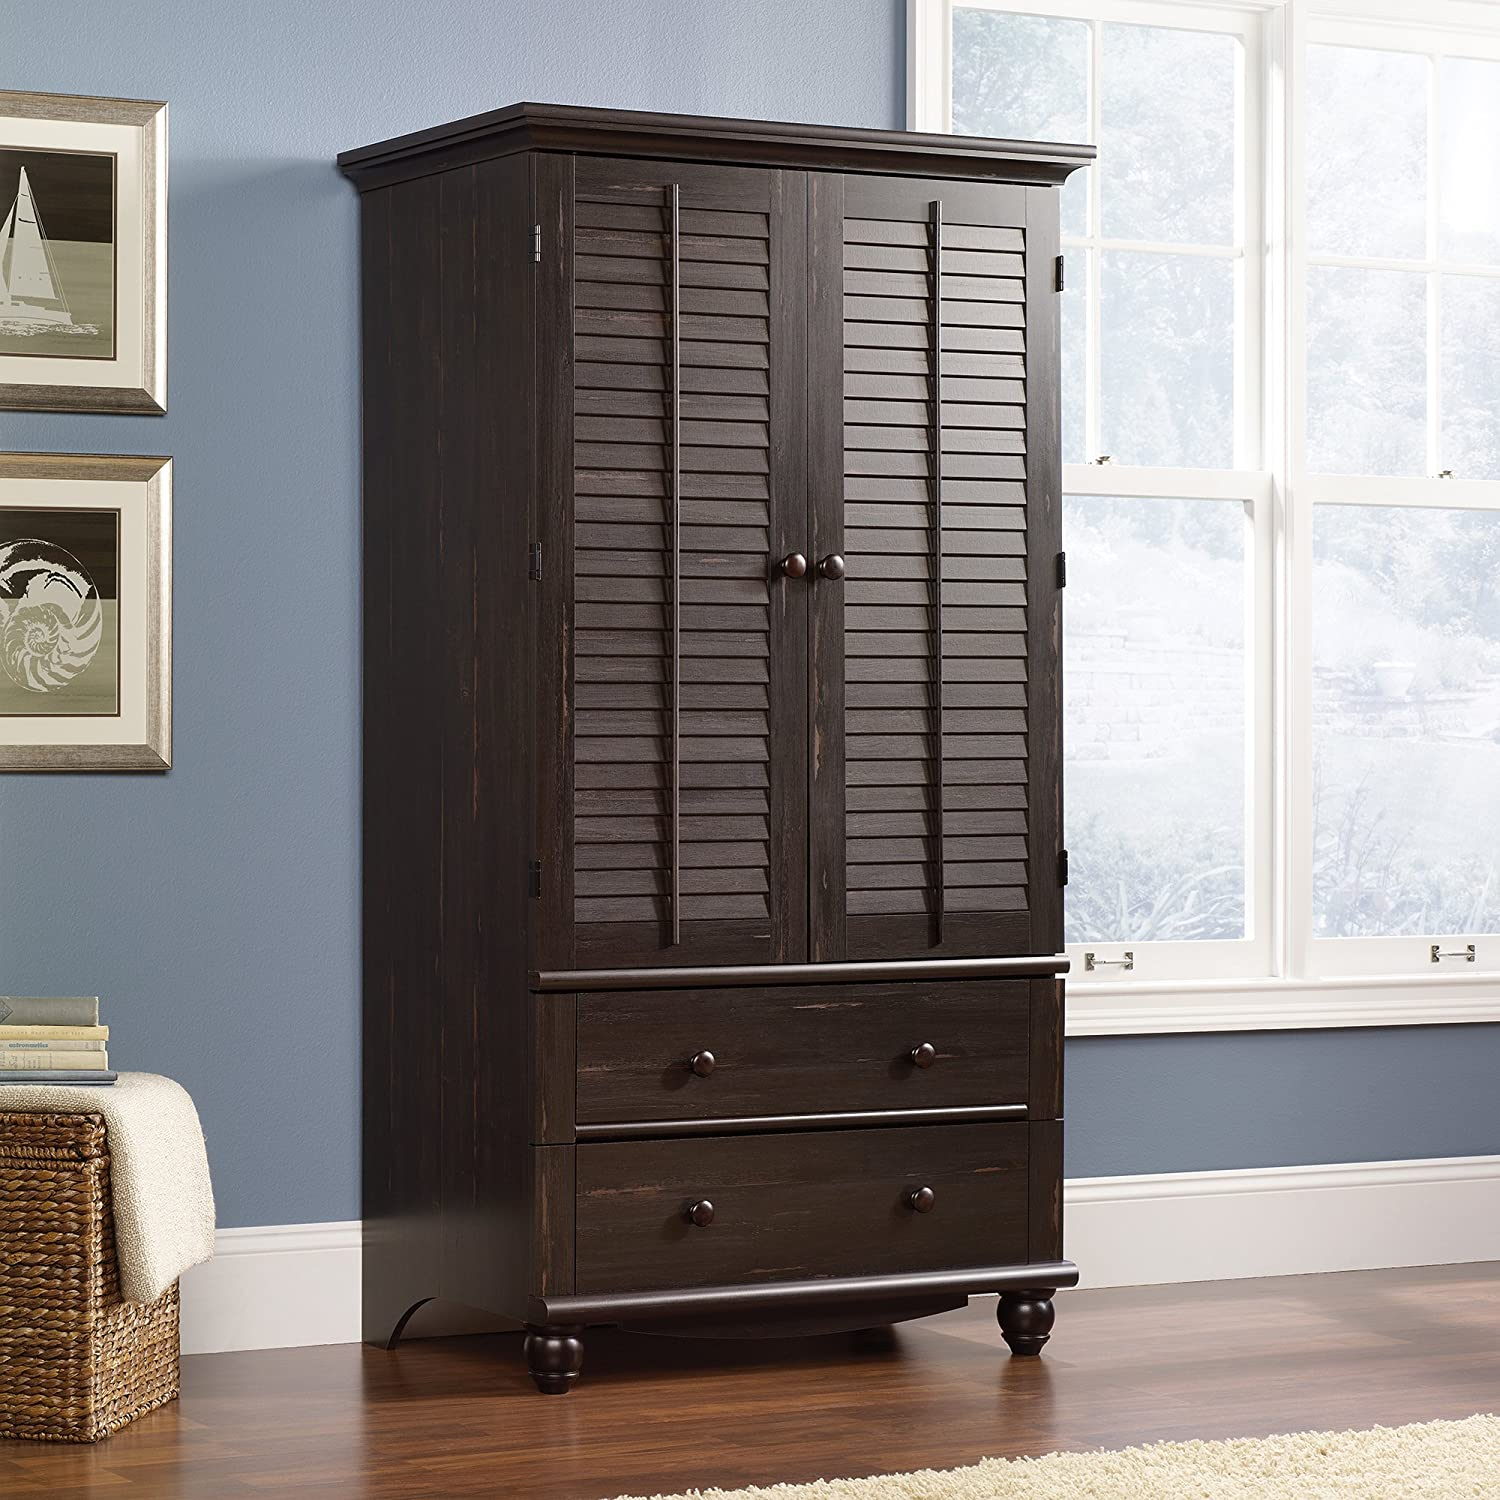 Amazon.com: Sauder Harbor View Armoire, Antiqued Paint: Kitchen & Dining - Amazon.com: Sauder Harbor View Armoire, Antiqued Paint: Kitchen